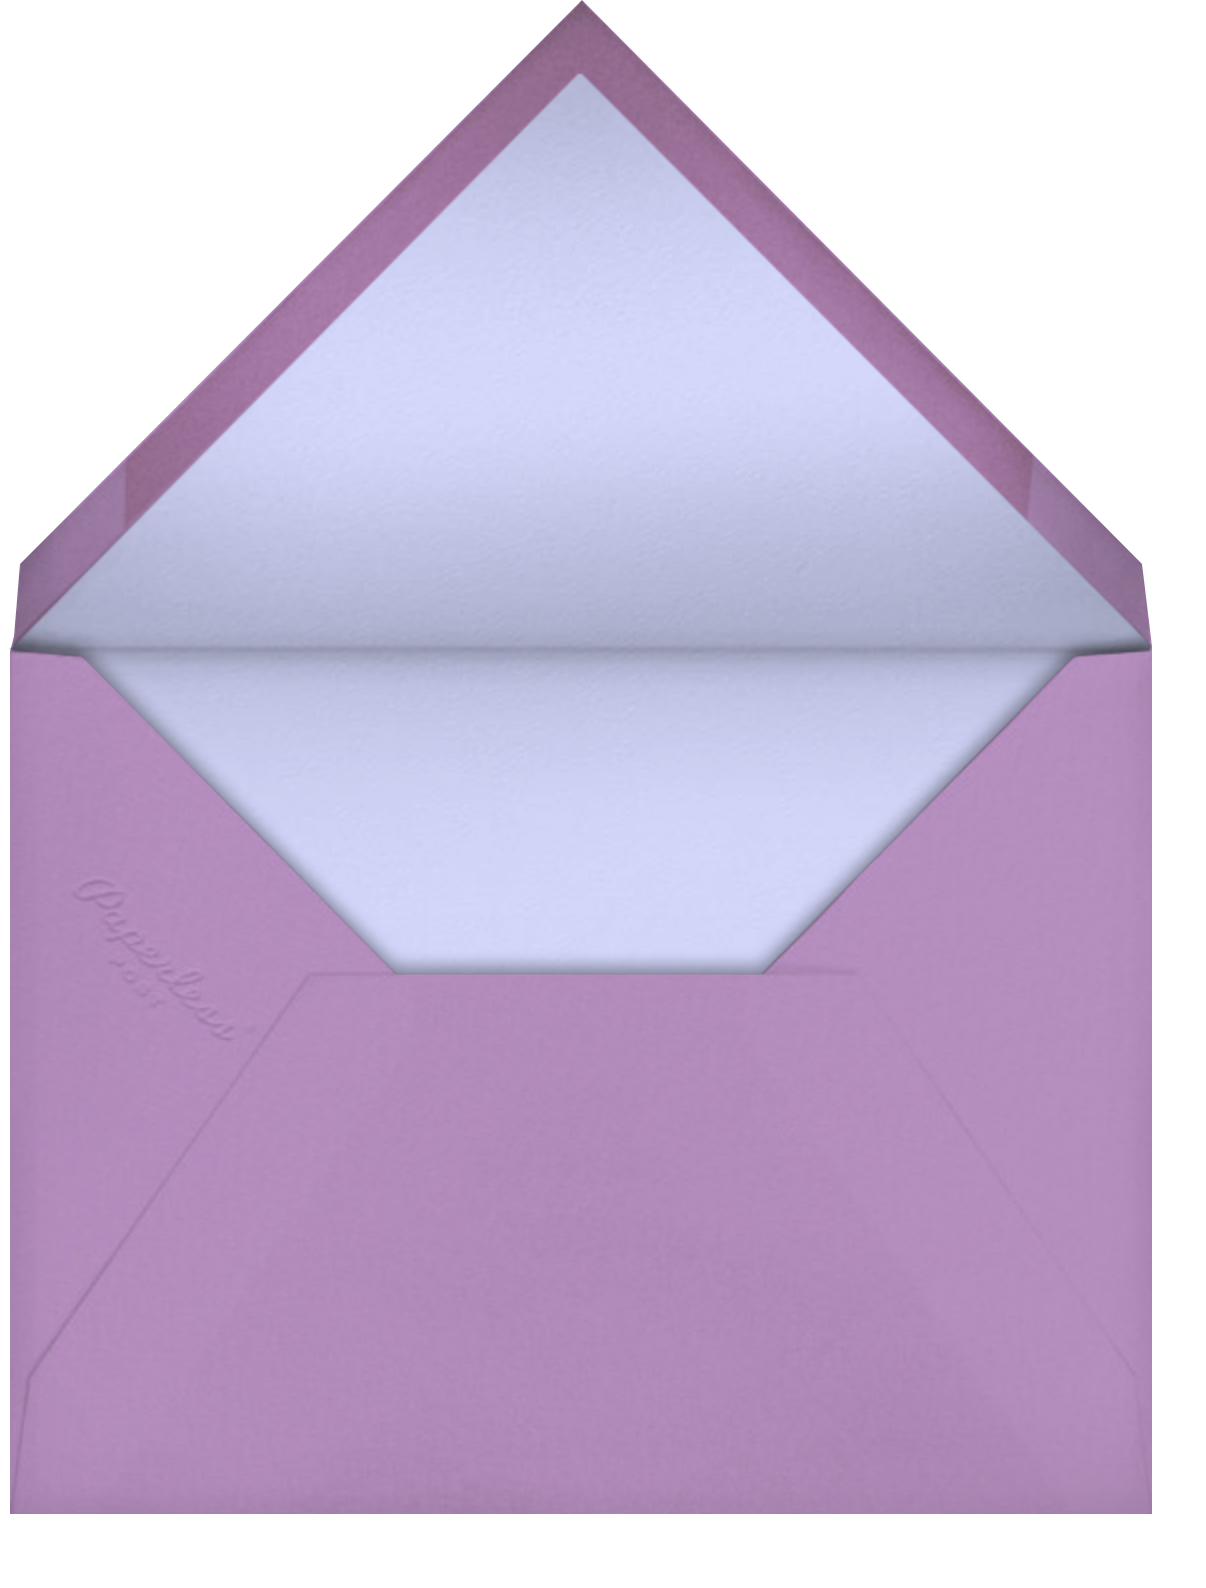 Say Her Name - Paperless Post - Envelope